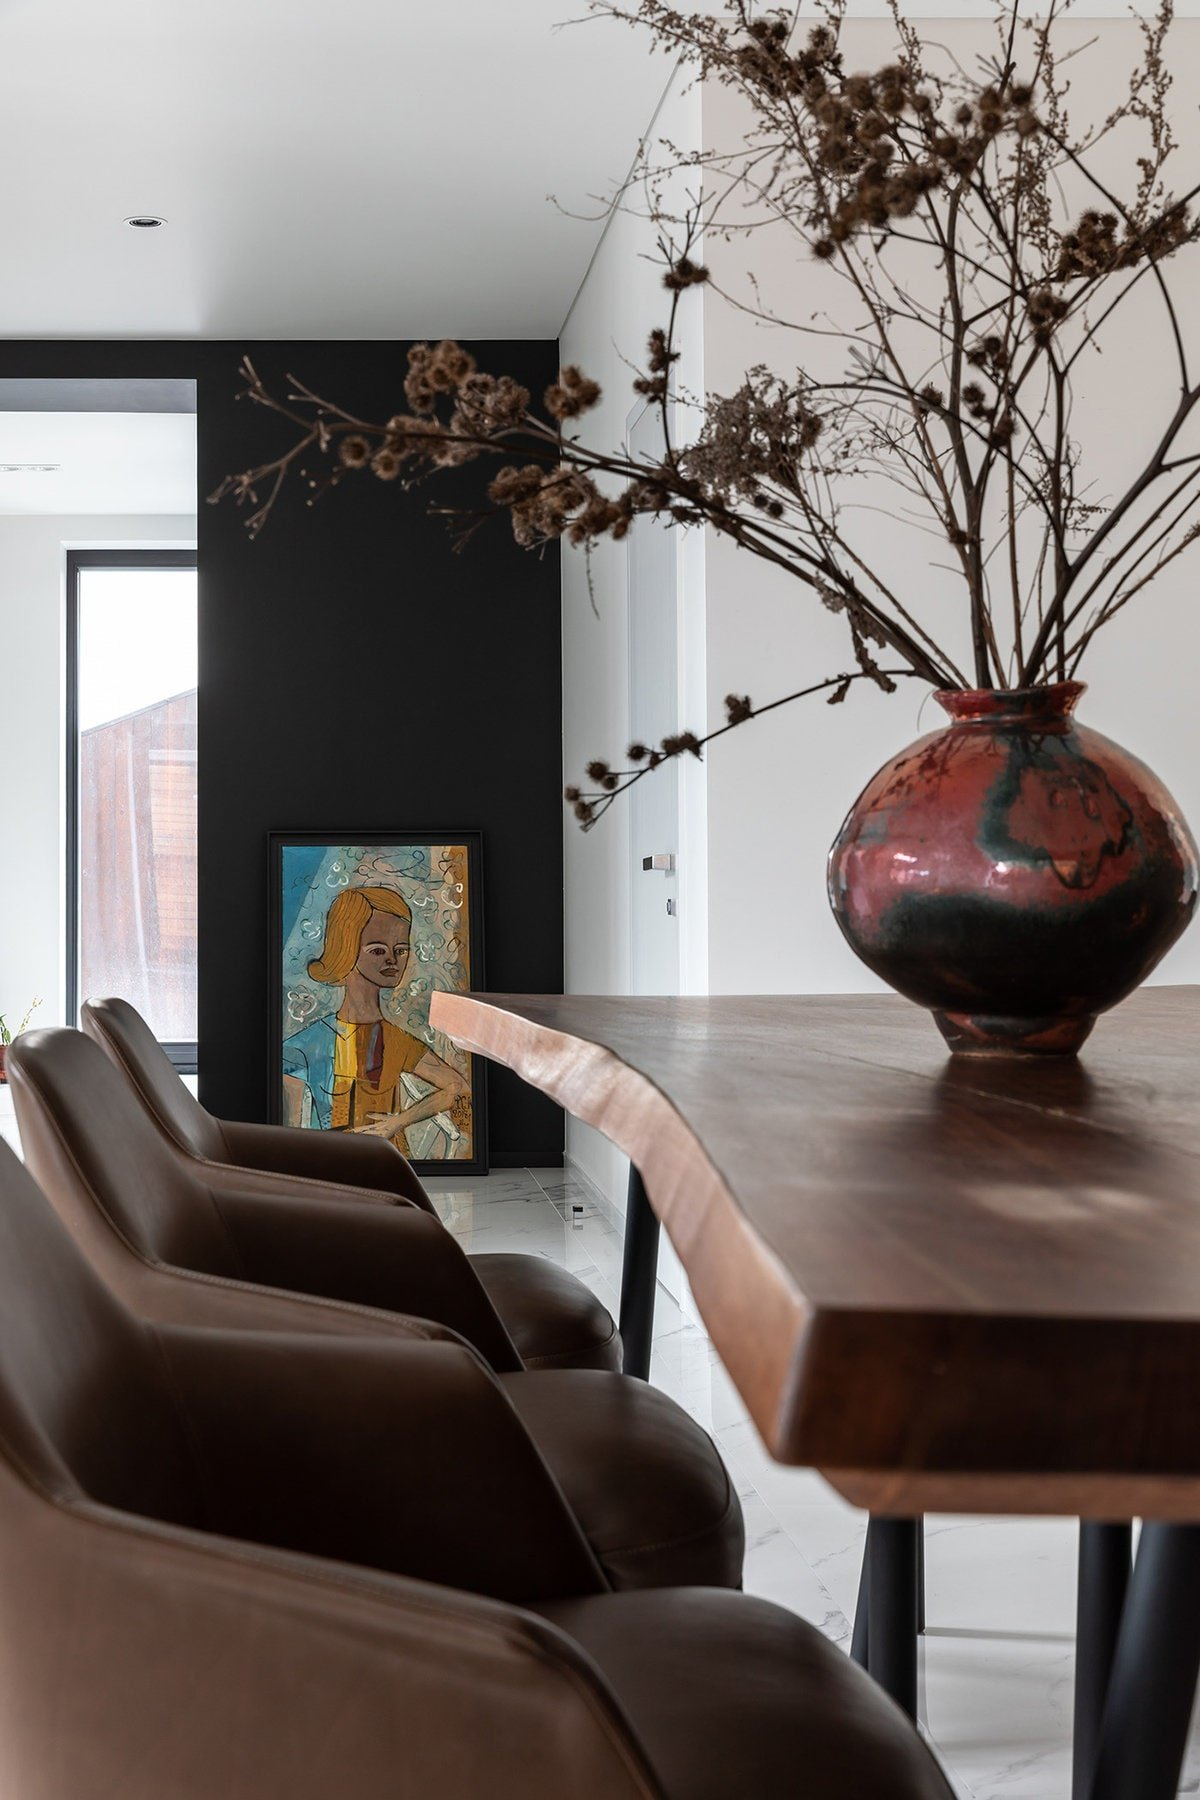 This is a closer look at the dining table that is adorned with a large jar centerpiece. On the far wall is a black panel adorned with a colorful painting leaning on the wall.